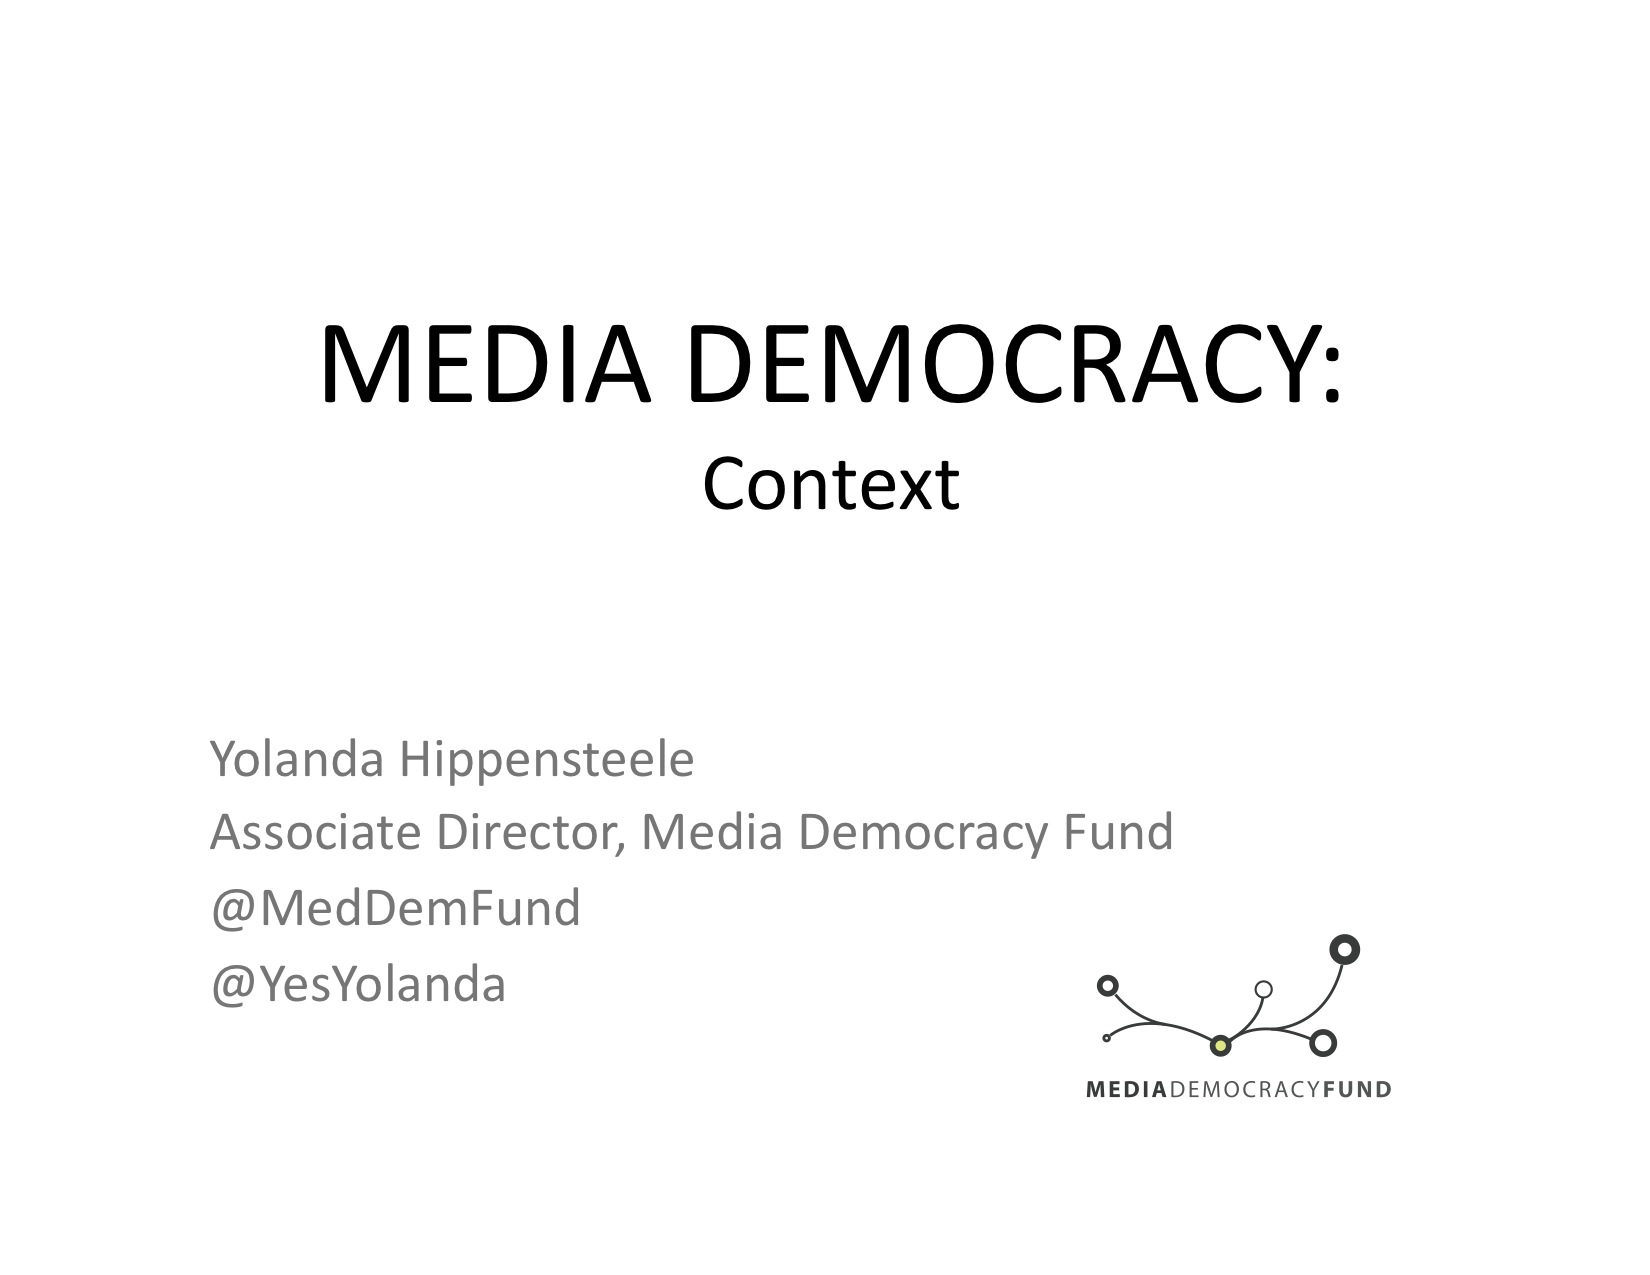 medea and democracy The media policy and democracy project (mpdp), which was launched in 2012, is an inter-university collaborative research project between the department of communication science at university of south africa (unisa), and the department of journalism, film and television at the university of johannesburg (uj.